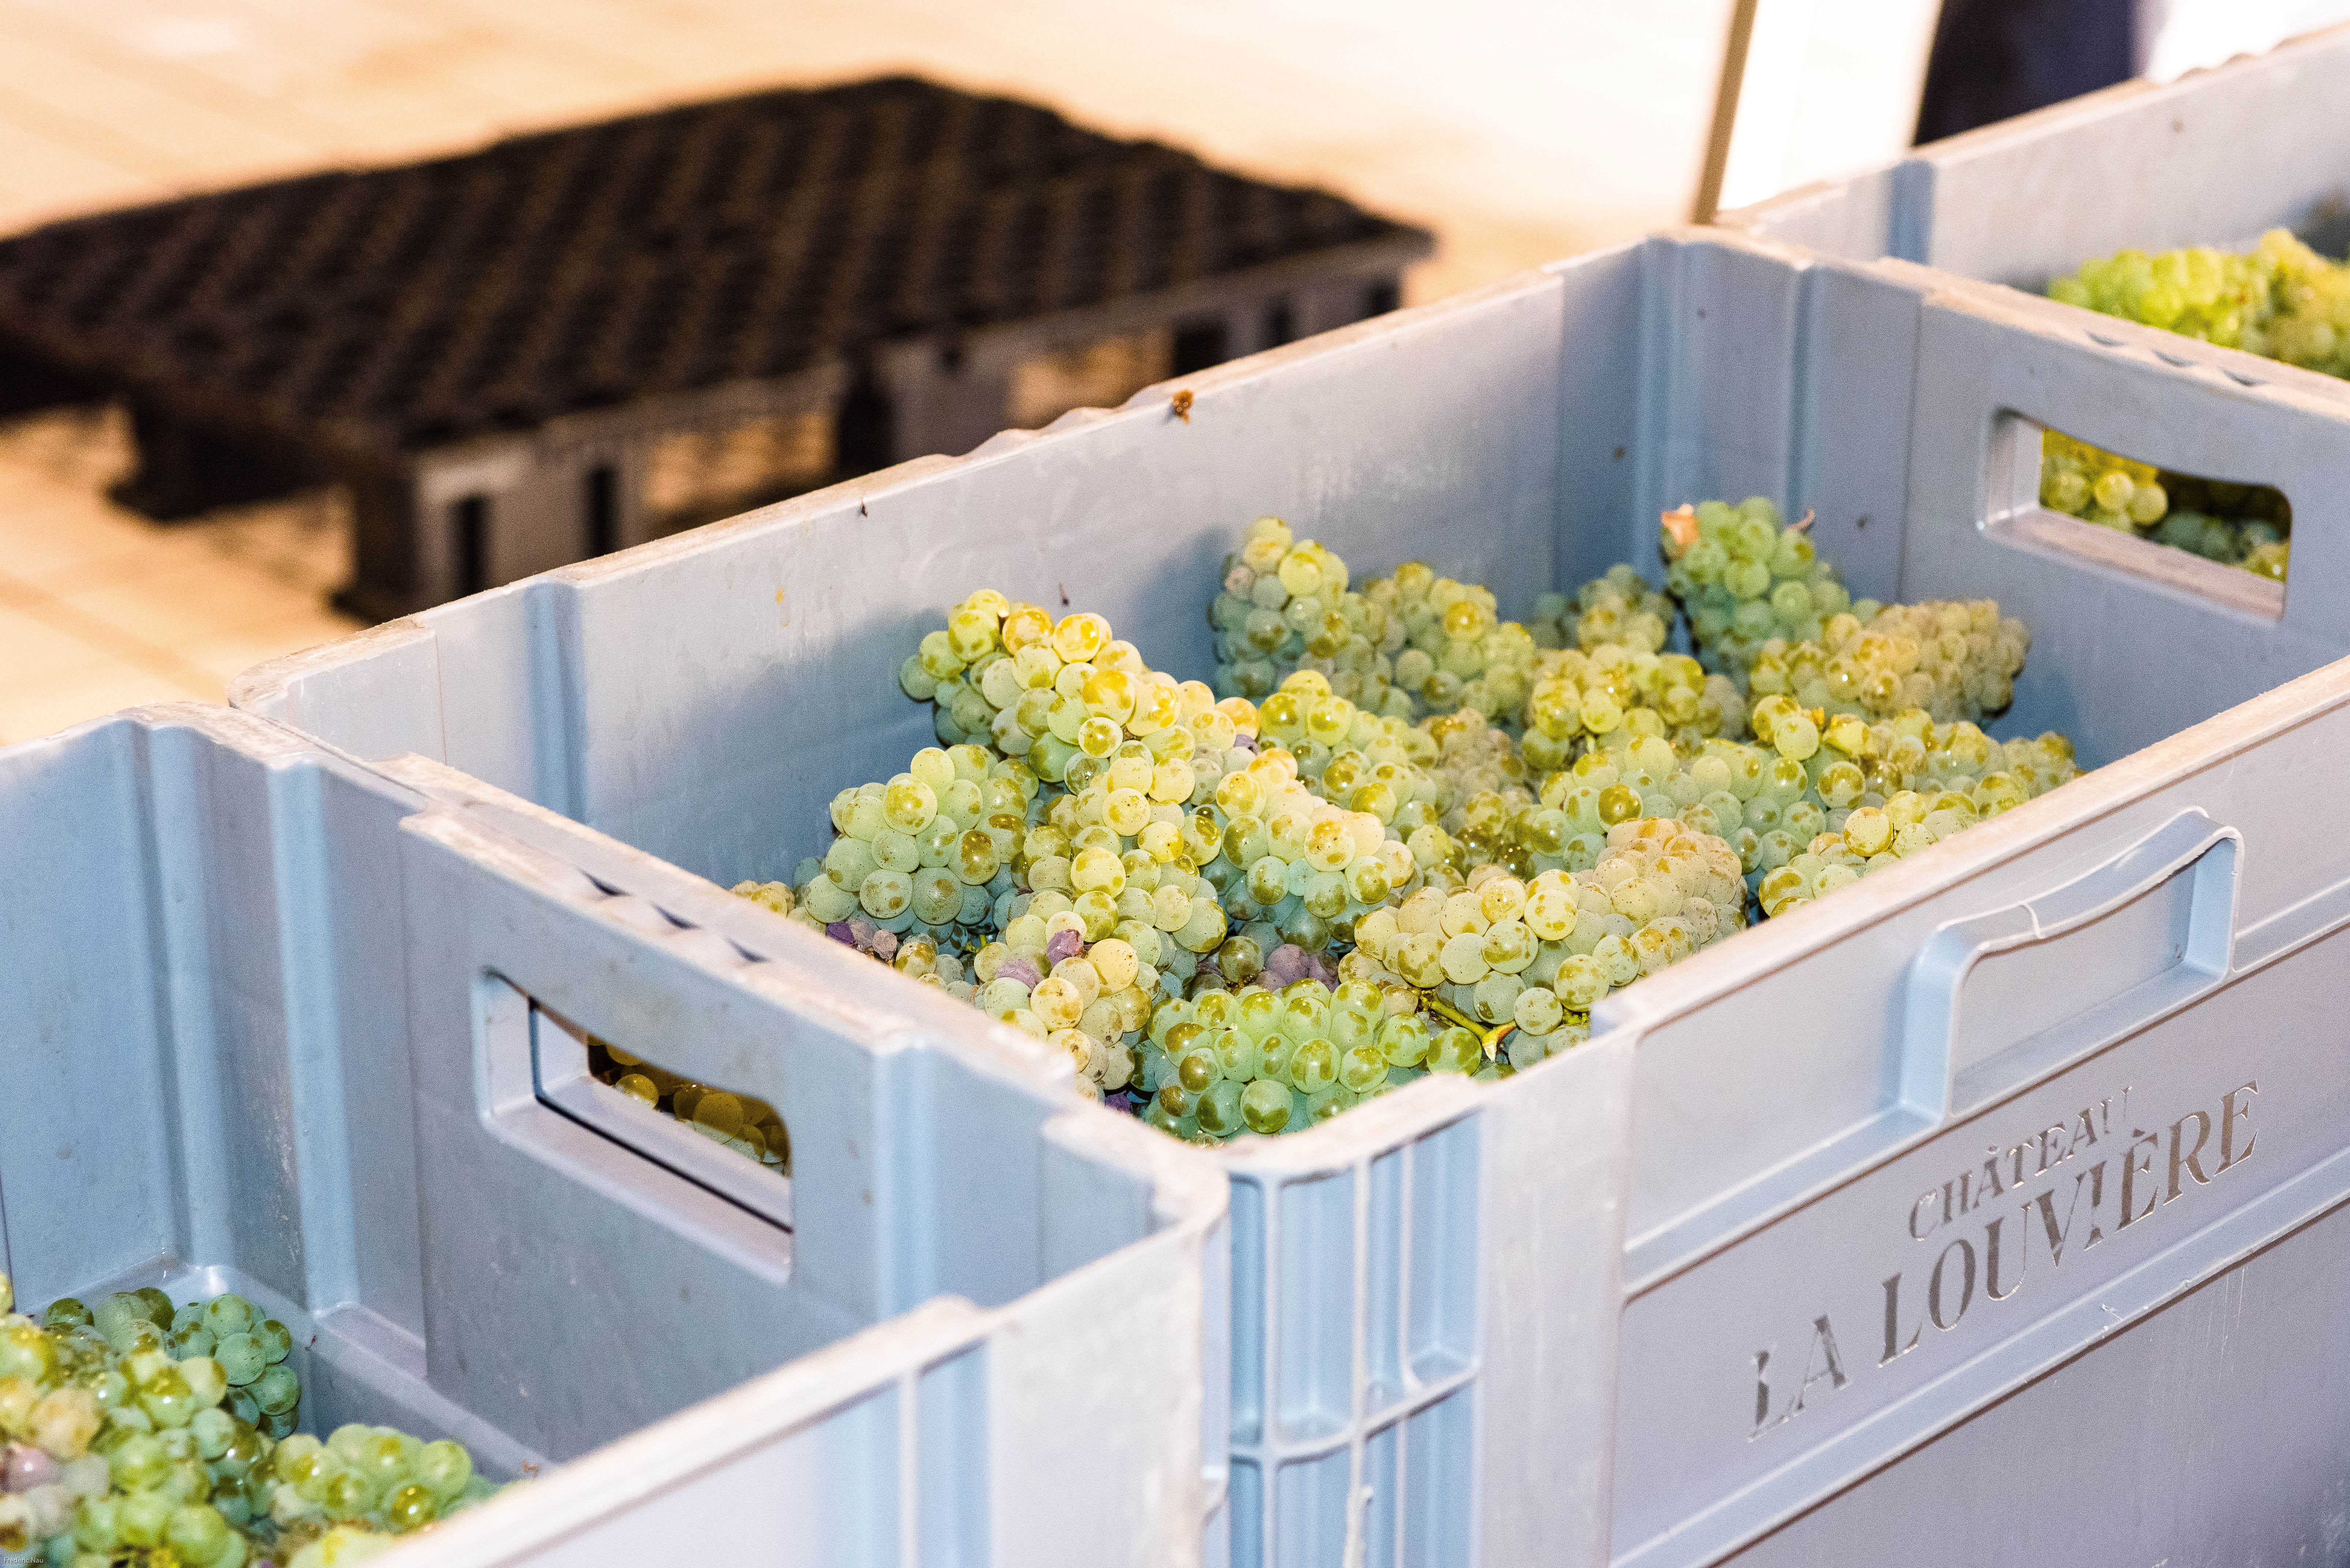 bordeaux_whitegrapes_harvest_experience_vendanges